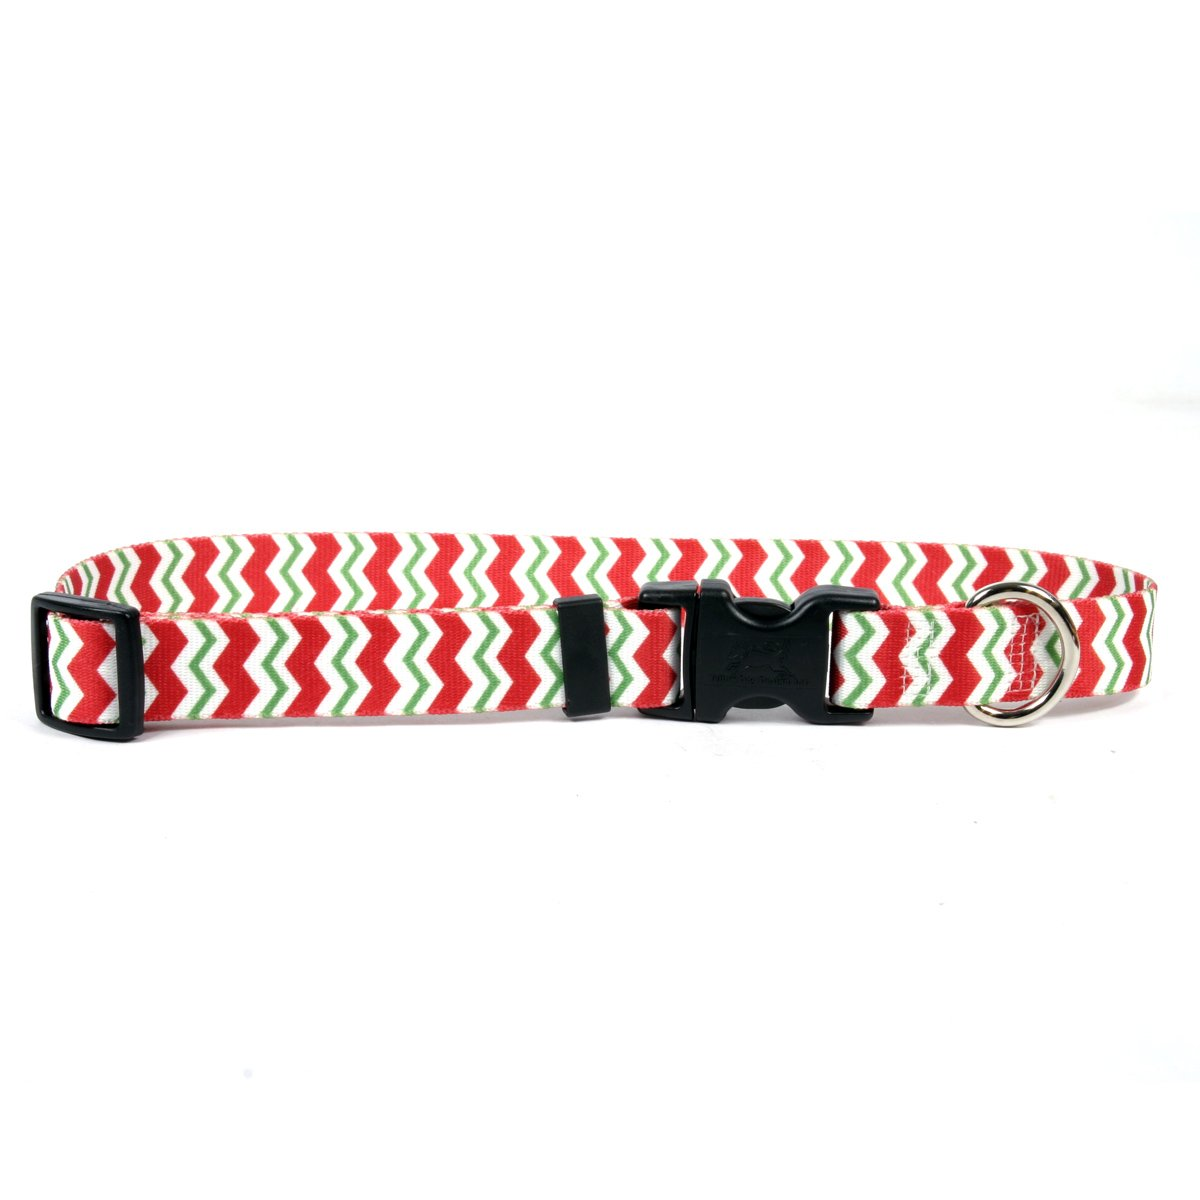 Peppermint Chevron Large 18\ Peppermint Chevron Large 18\ Yellow Dog Design Peppermint Stick Chevron Stripes Dog Collar with ID Tag System-Large-1  Neck 18 to 28